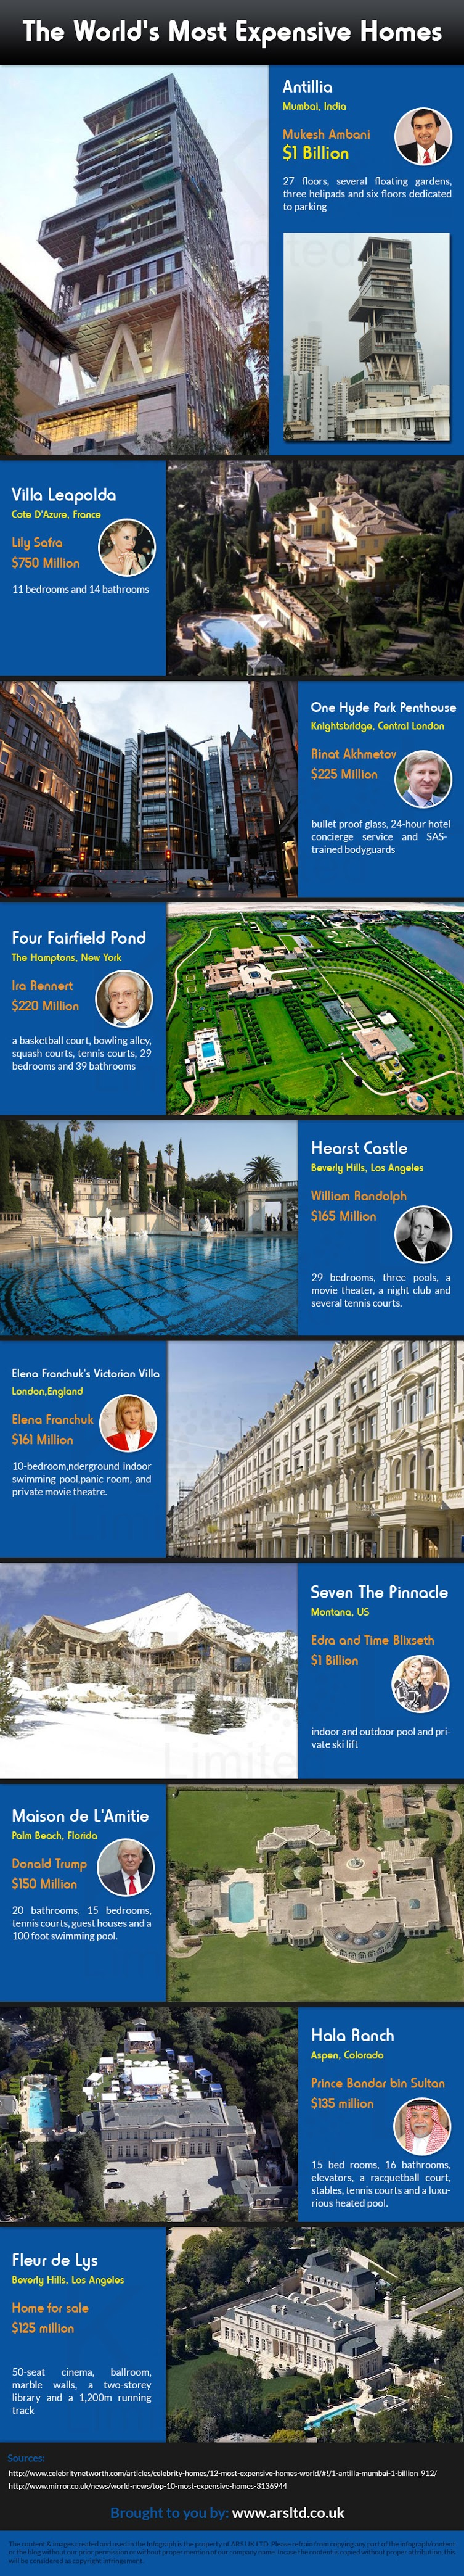 Infographic: The World's Most Expensive Homes